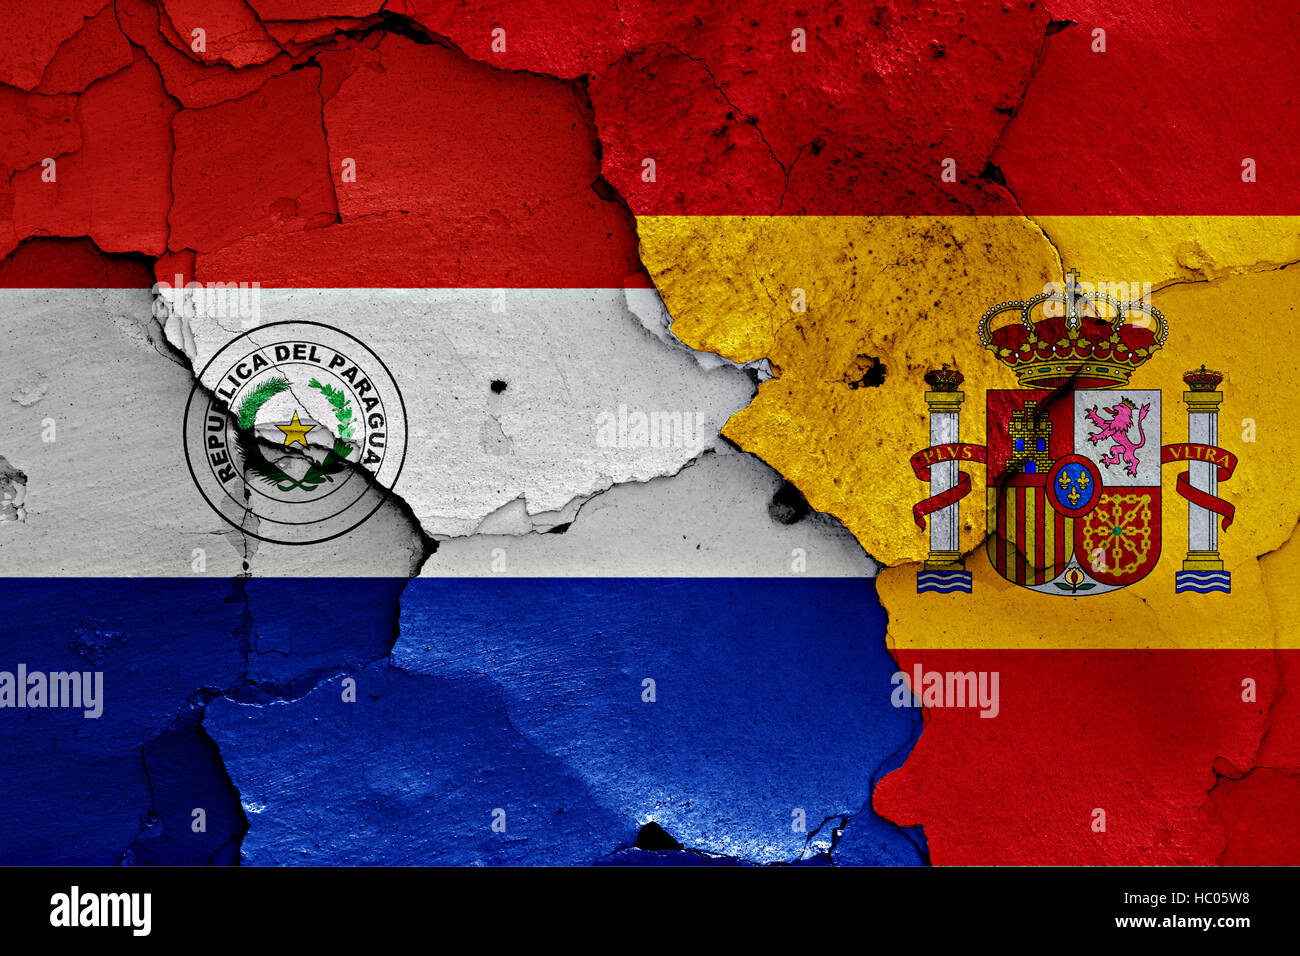 flags of Paraguay and Spain painted on cracked wall - Stock Image